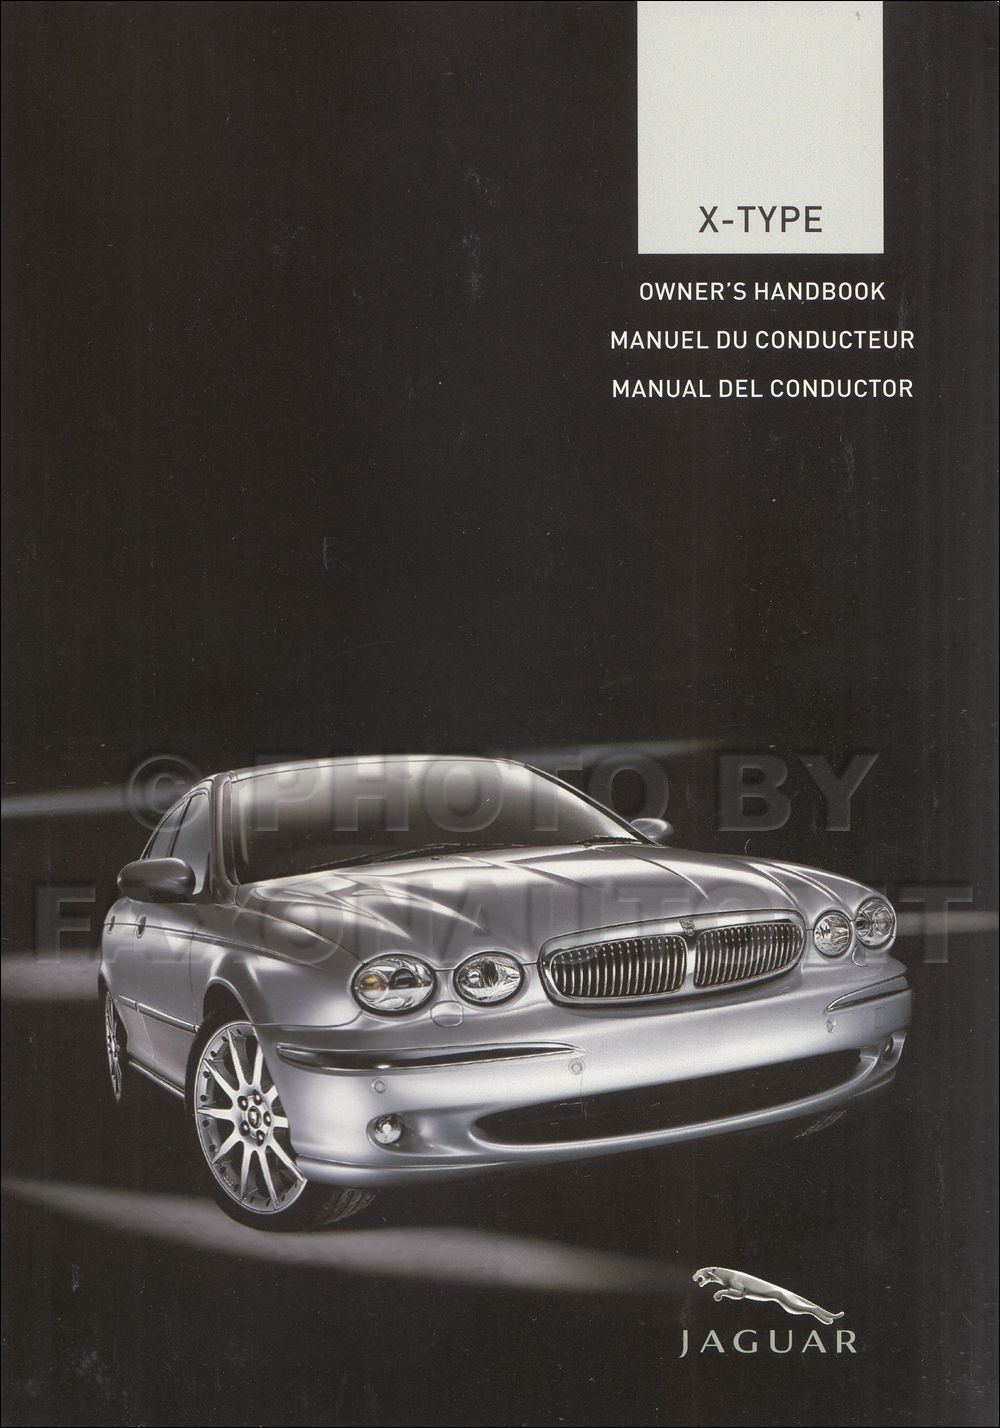 Wiring Diagram For 2004 Jaguar X Type On Wiring Diagram For Pioneer